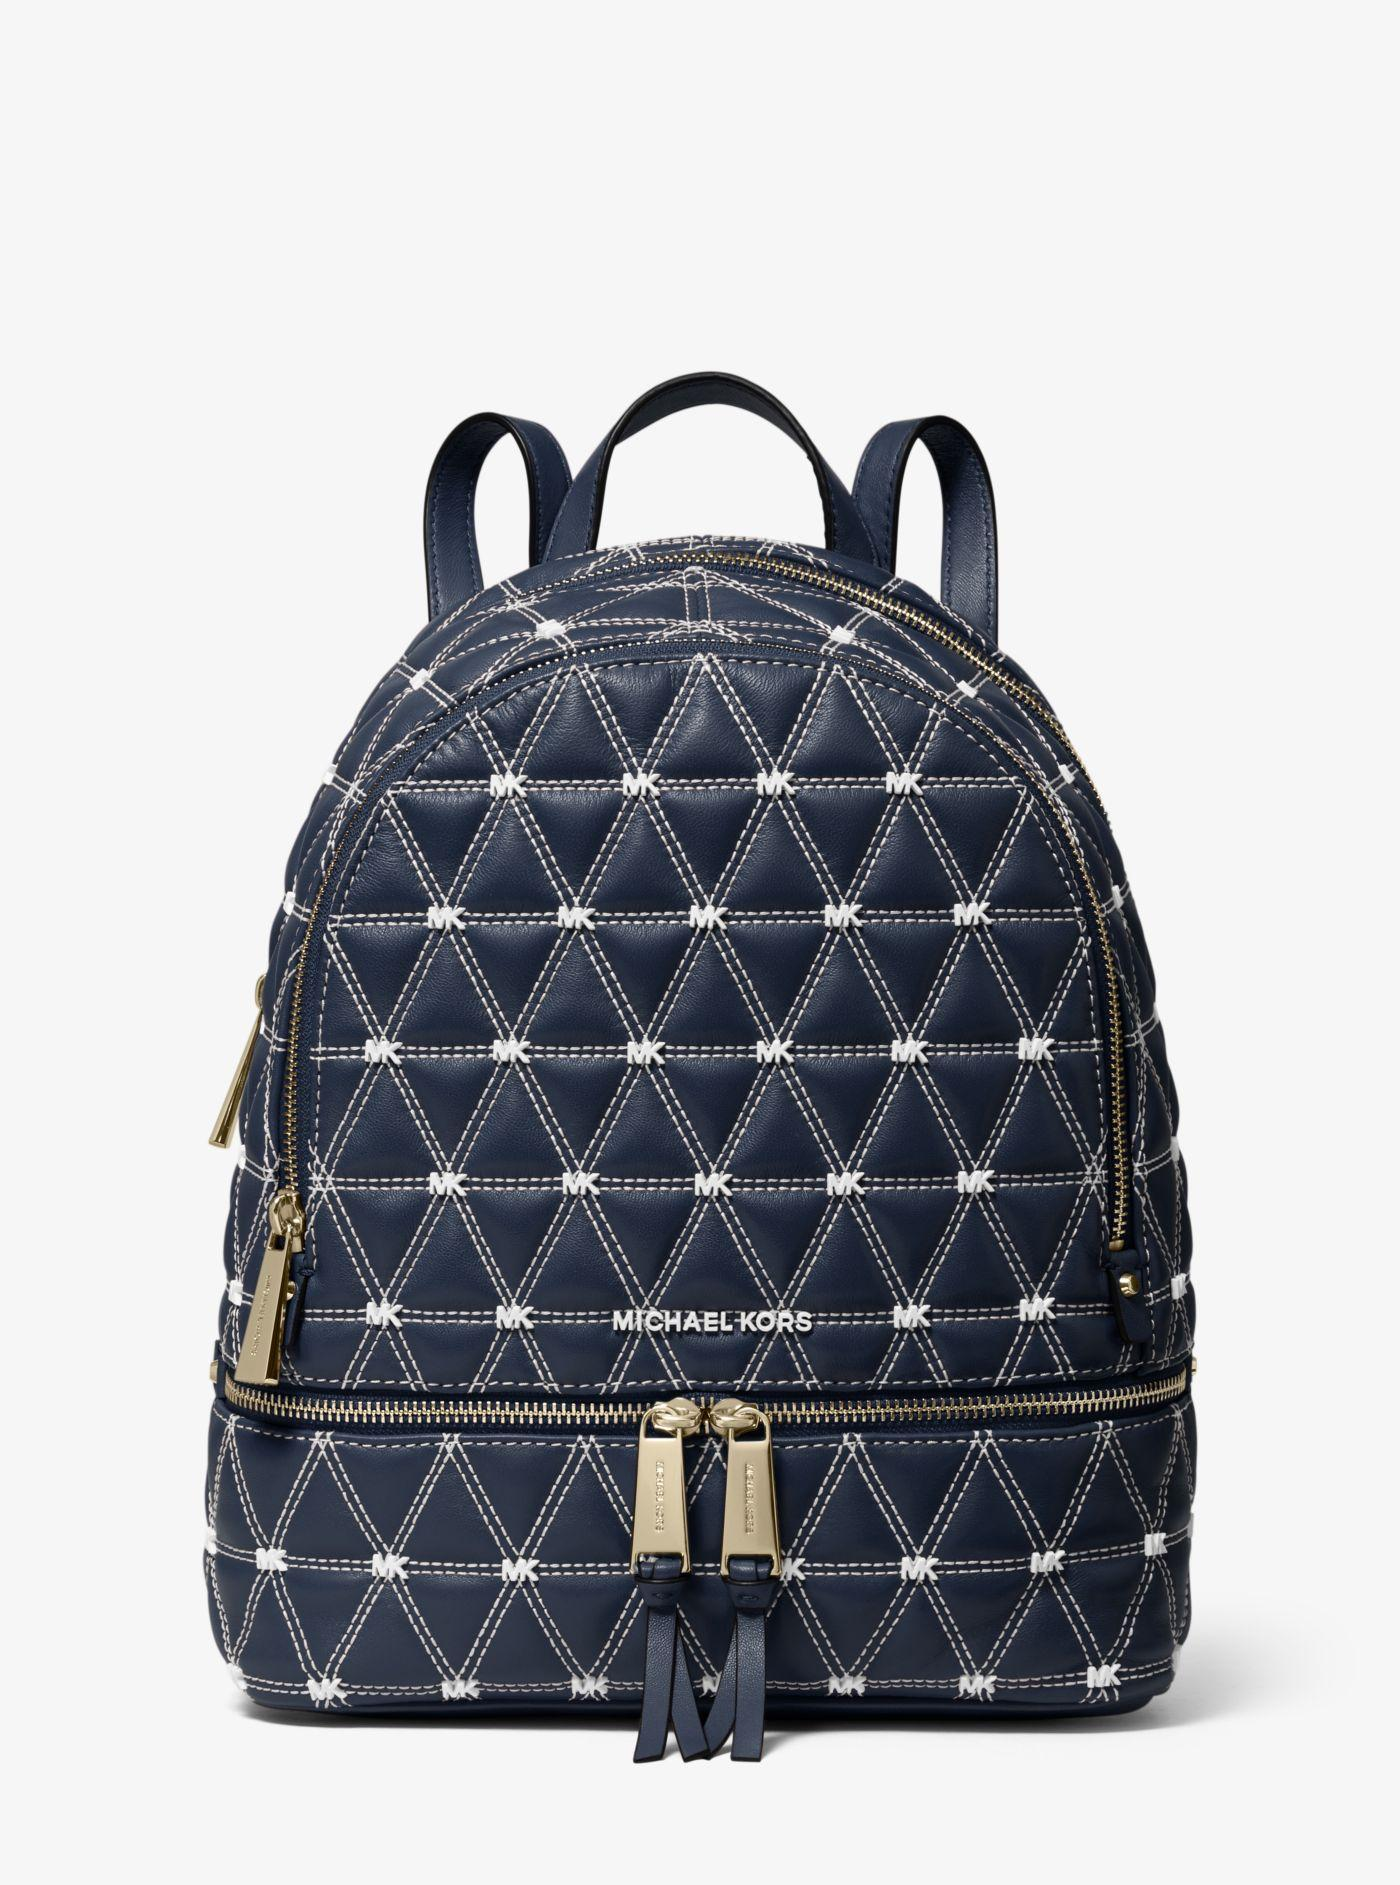 Lyst - Michael Kors Rhea Medium Quilted Leather Backpack in Blue 7e1cf8b711480